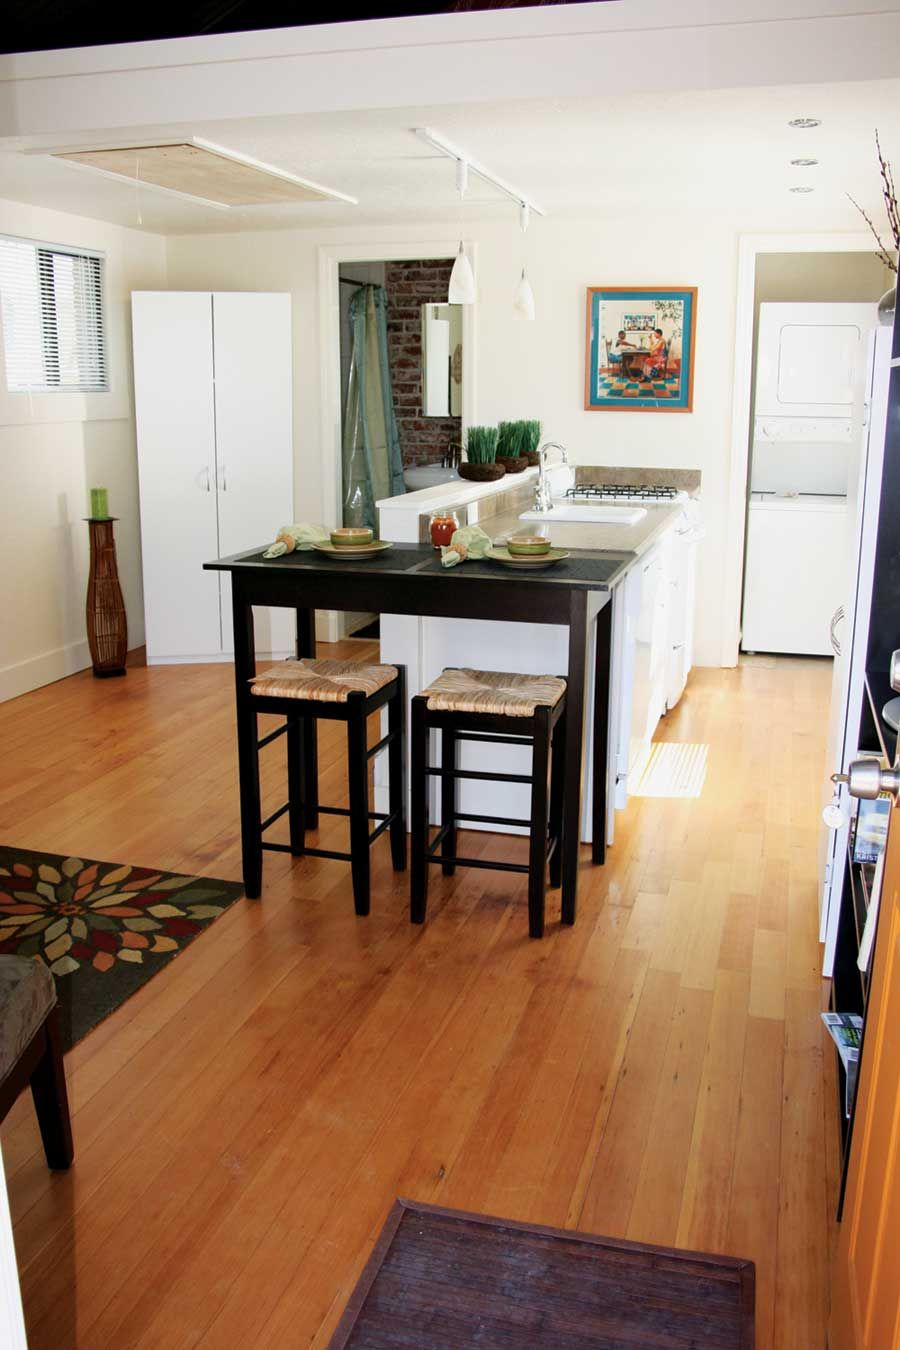 Sensational 1000 Images About Tiny House On Pinterest Tiny House On Wheels Largest Home Design Picture Inspirations Pitcheantrous